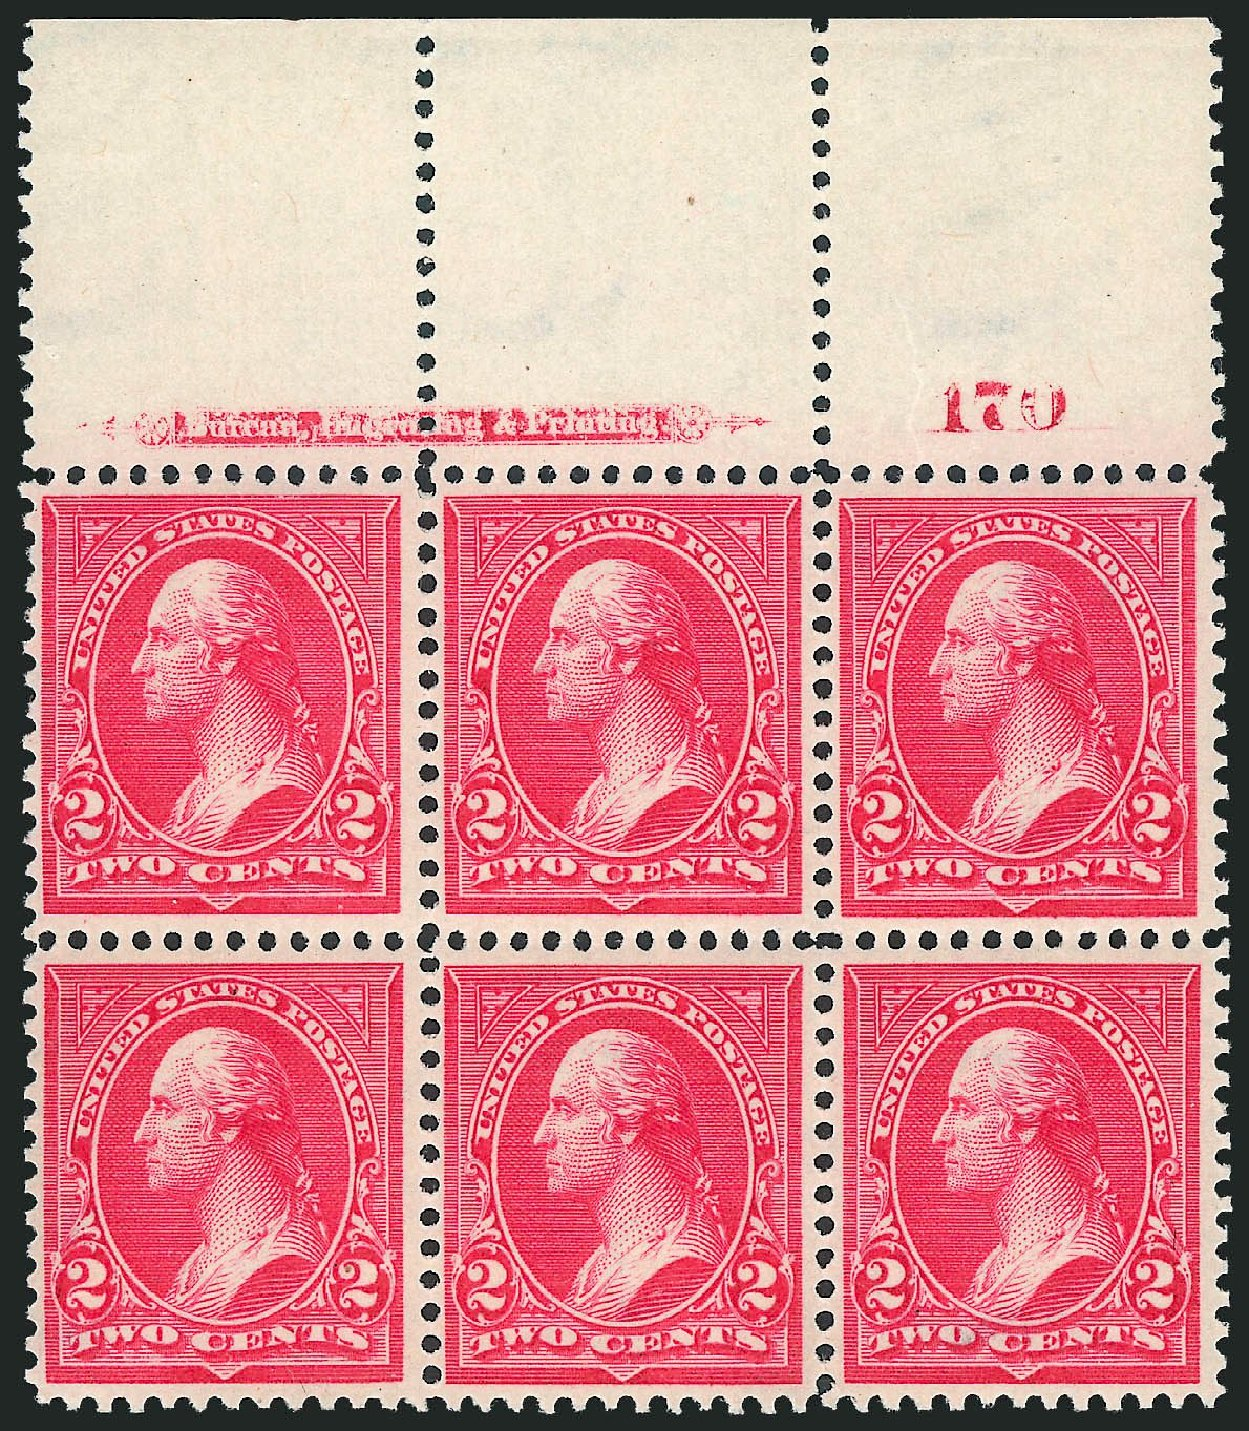 Prices of US Stamps Scott Catalogue # 267 - 2c 1895 Washington. Robert Siegel Auction Galleries, Mar 2013, Sale 1040, Lot 1577